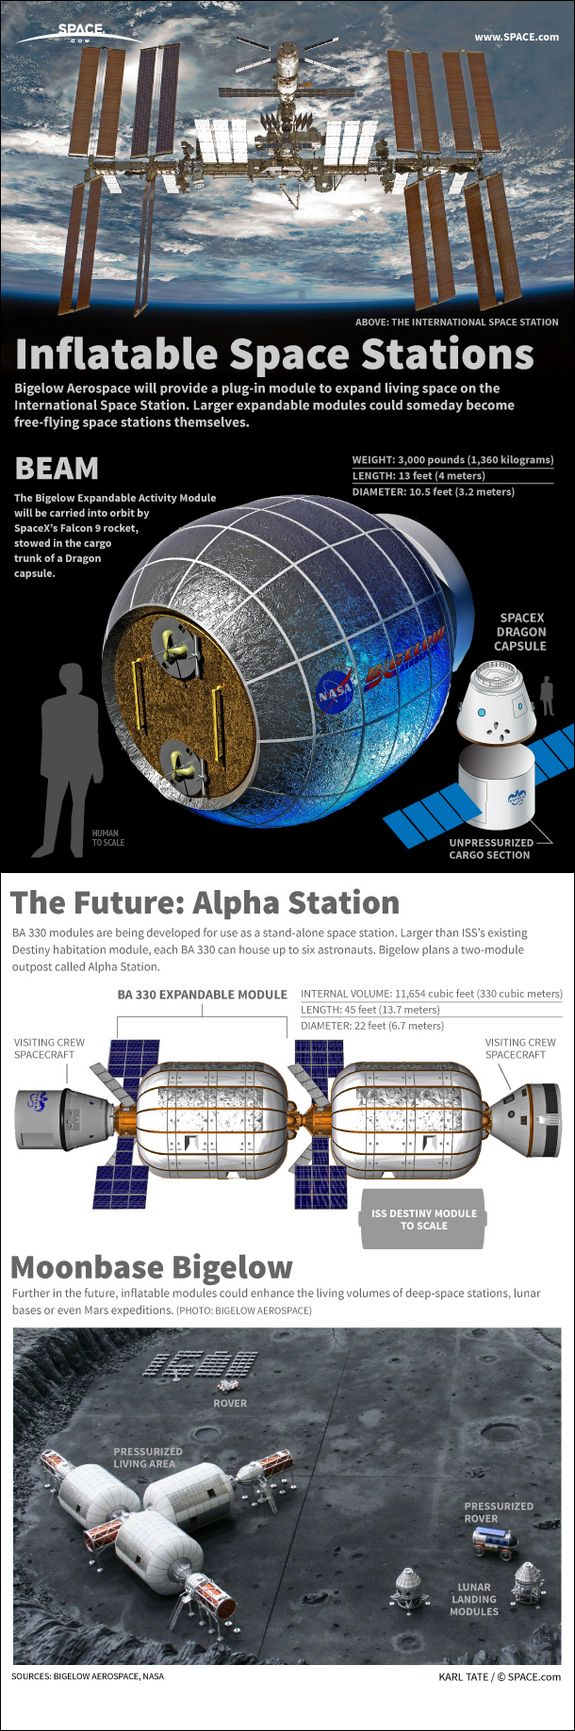 Bigelow Aerospace's BEAM expandable module will enhance the living area of the International Space Station. #Infograph